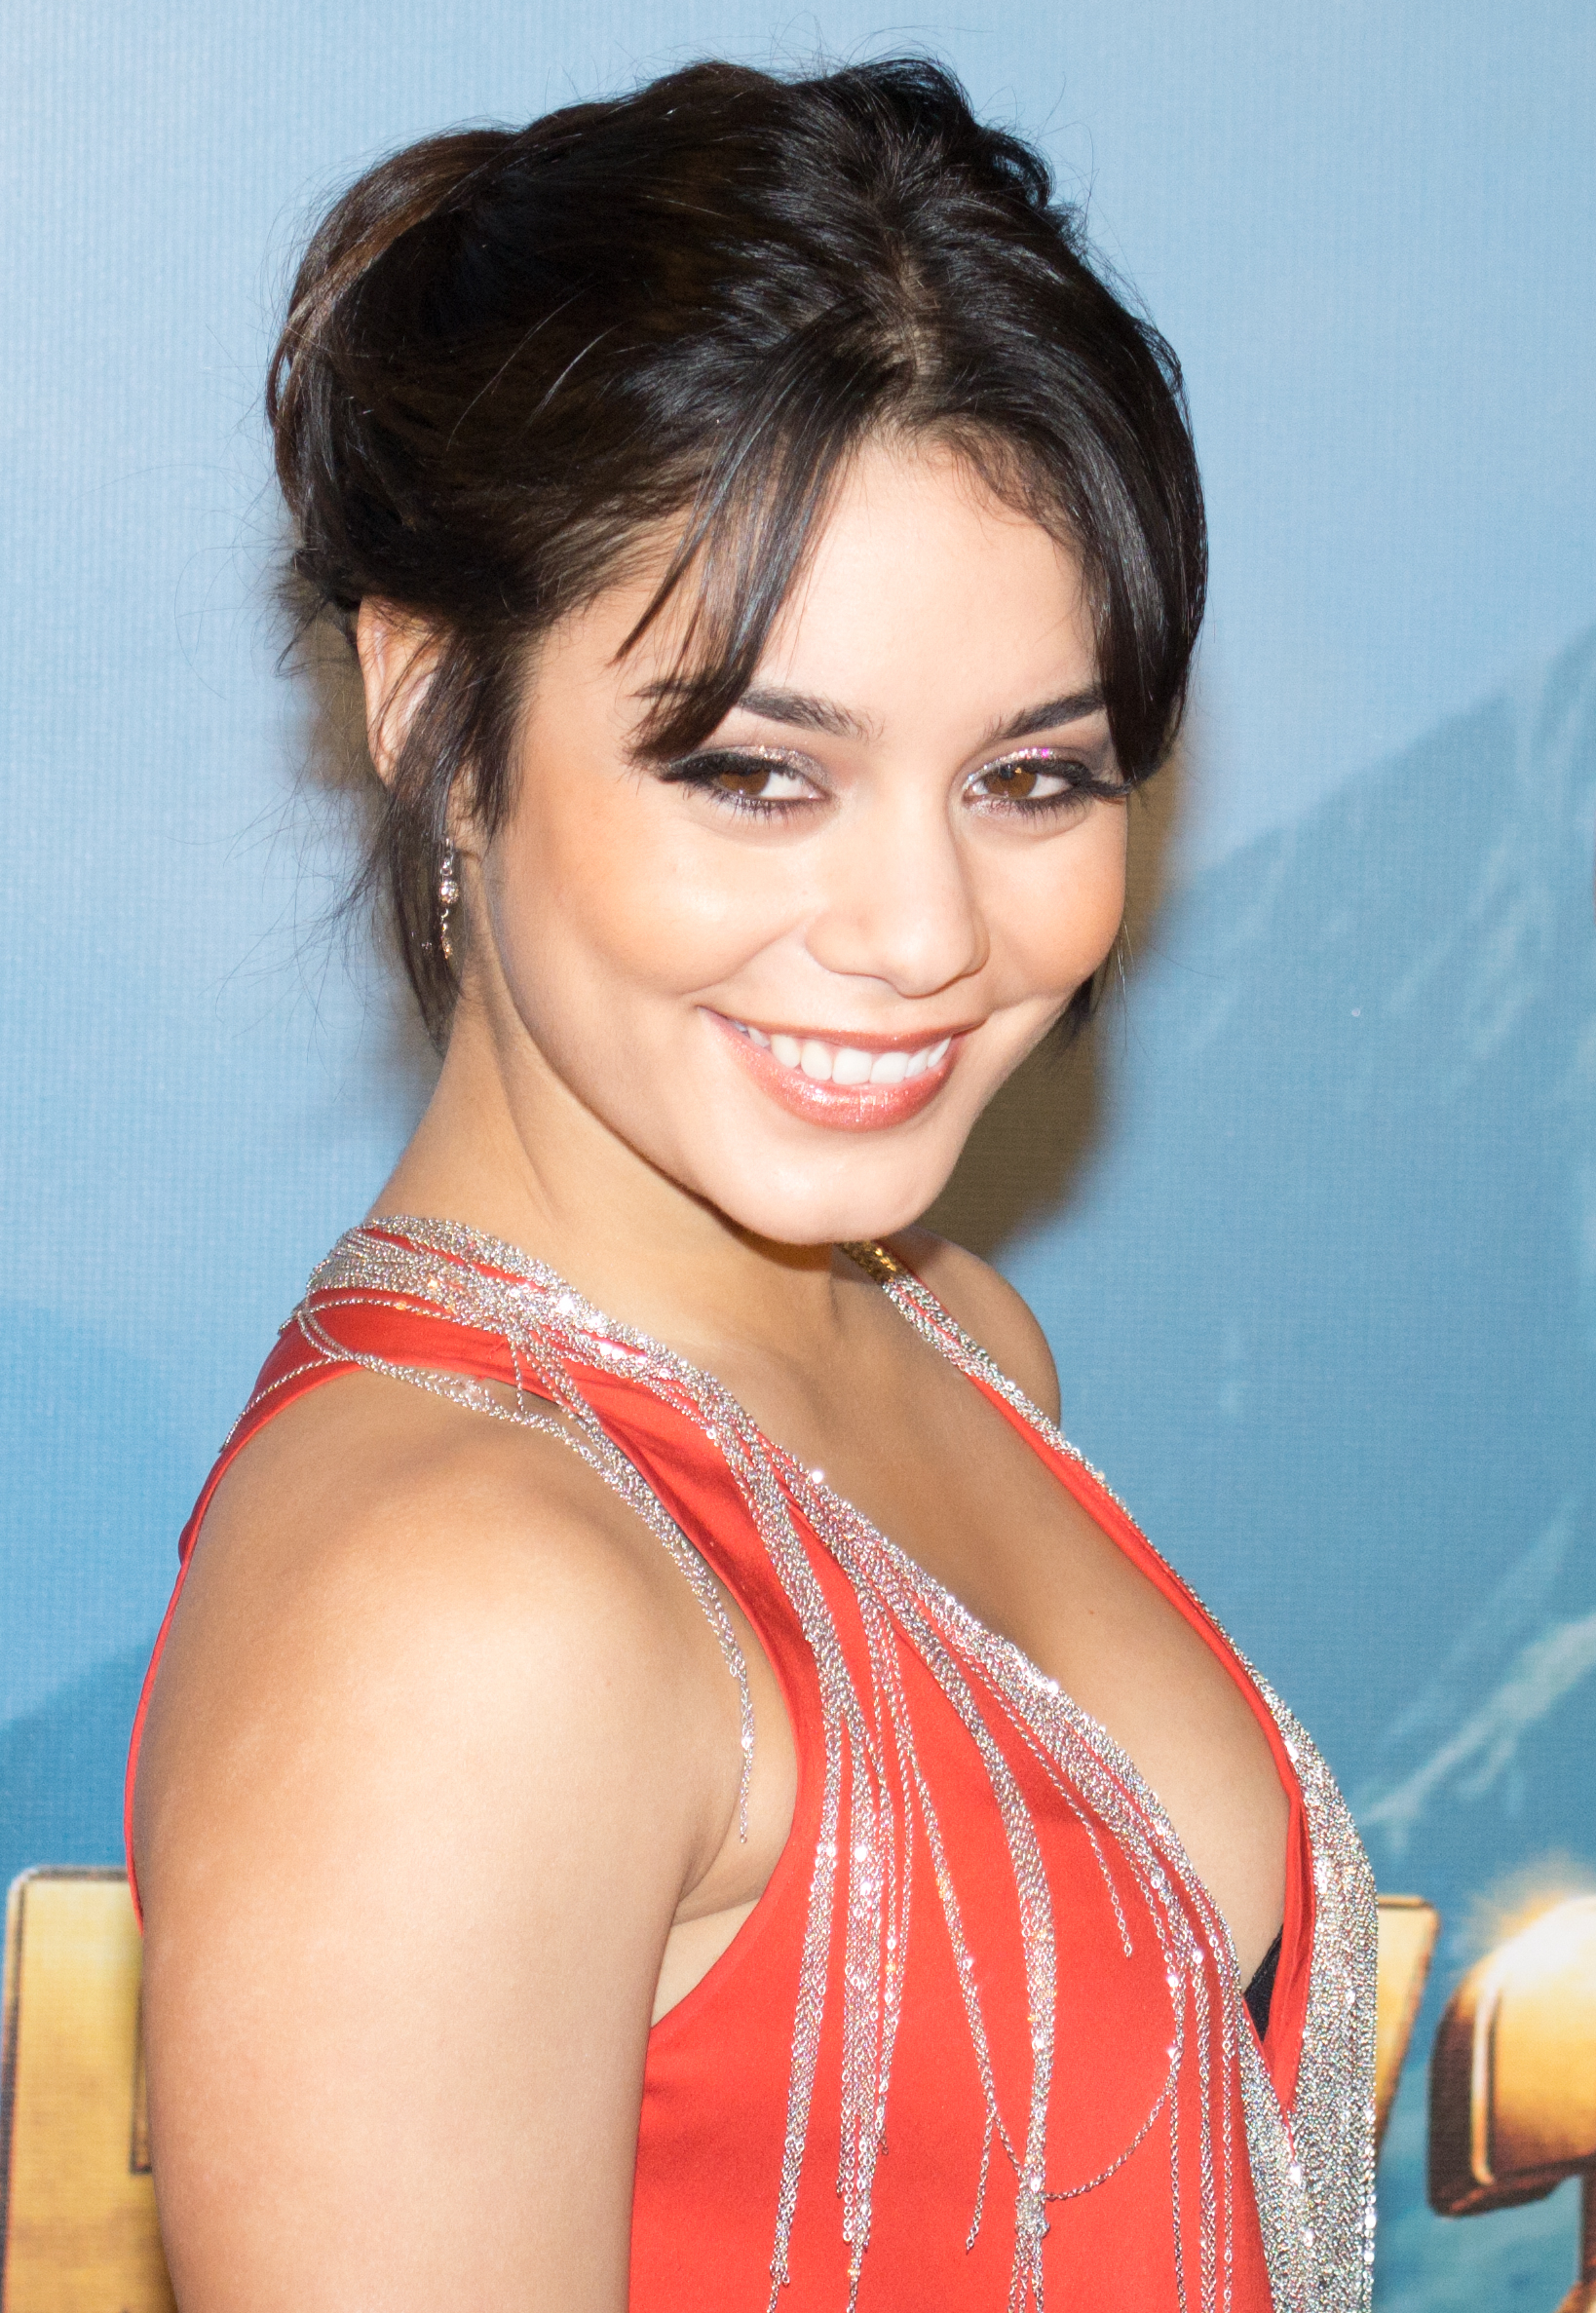 vanessa hudgens moviesvanessa hudgens and austin butler, vanessa hudgens 2016, vanessa hudgens vk, vanessa hudgens and zac efron, vanessa hudgens say ok, vanessa hudgens style, vanessa hudgens movies, vanessa hudgens films, vanessa hudgens fan site, vanessa hudgens kinopoisk, vanessa hudgens tumblr, vanessa hudgens boyfriend, vanessa hudgens 2015, vanessa hudgens wiki, vanessa hudgens фото, vanessa hudgens age, vanessa hudgens gif tumblr, vanessa hudgens png, vanessa hudgens say ok перевод, vanessa hudgens gallery